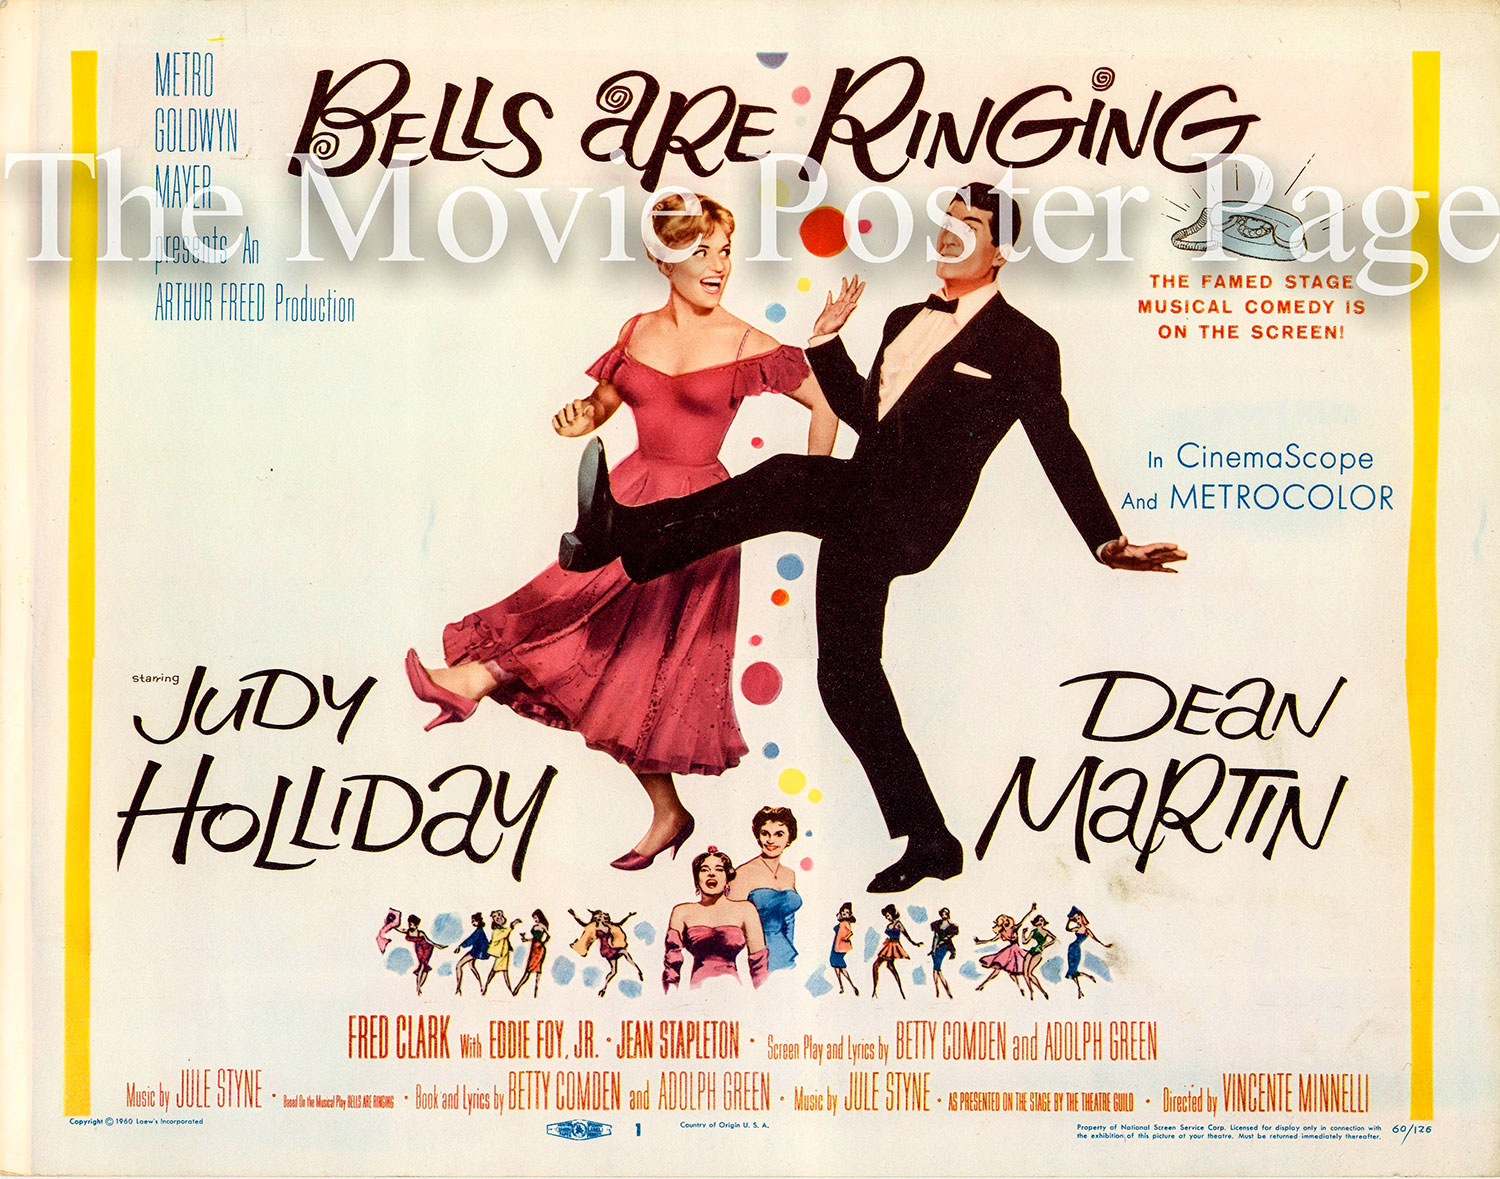 Pictured is a US title card for the 1960 Vincente Minelli film Bells Are Ringing.